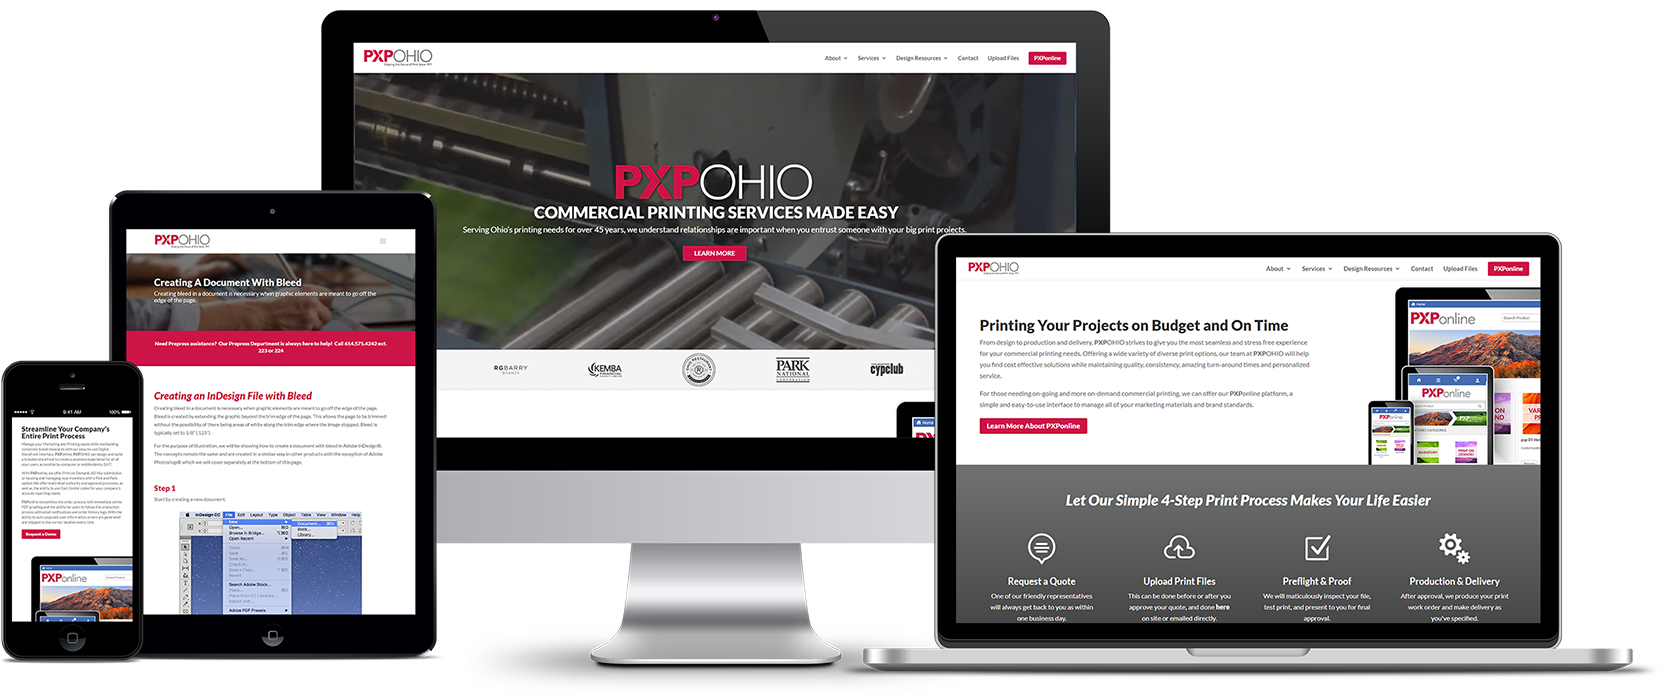 PXP Ohio Responsive Website Design Showcase